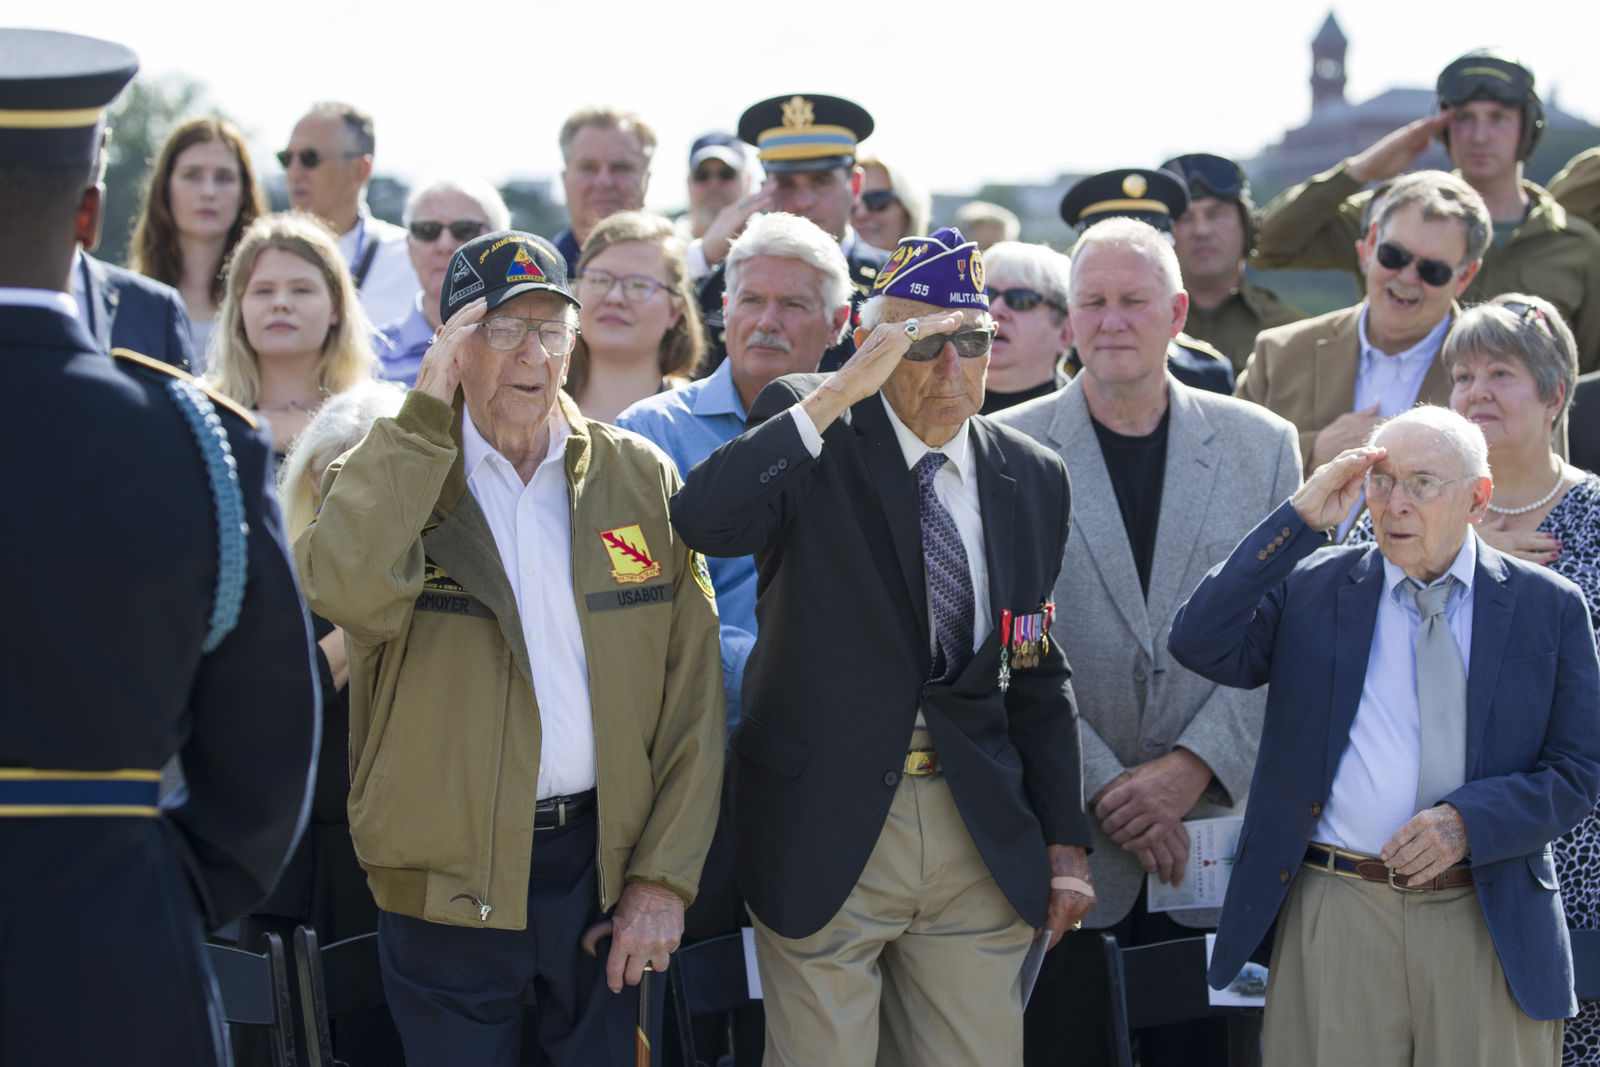 World War II veterans Clarence Smoyer, 96, left, Joseph Caserta and Buck Marsh salute during a ceremony to present the Bronze Star to Smoyer at the World War II Memorial, Wednesday, Sept. 18, 2019, in Washington. Smoyer fought with the U.S. Army's 3rd Armored Division, nicknamed the Spearhead Division. In 1945, he defeated a German Panther tank near the cathedral in Cologne, Germany — a dramatic duel filmed by an Army cameraman that was seen all over the world. (AP Photo/Alex Brandon)